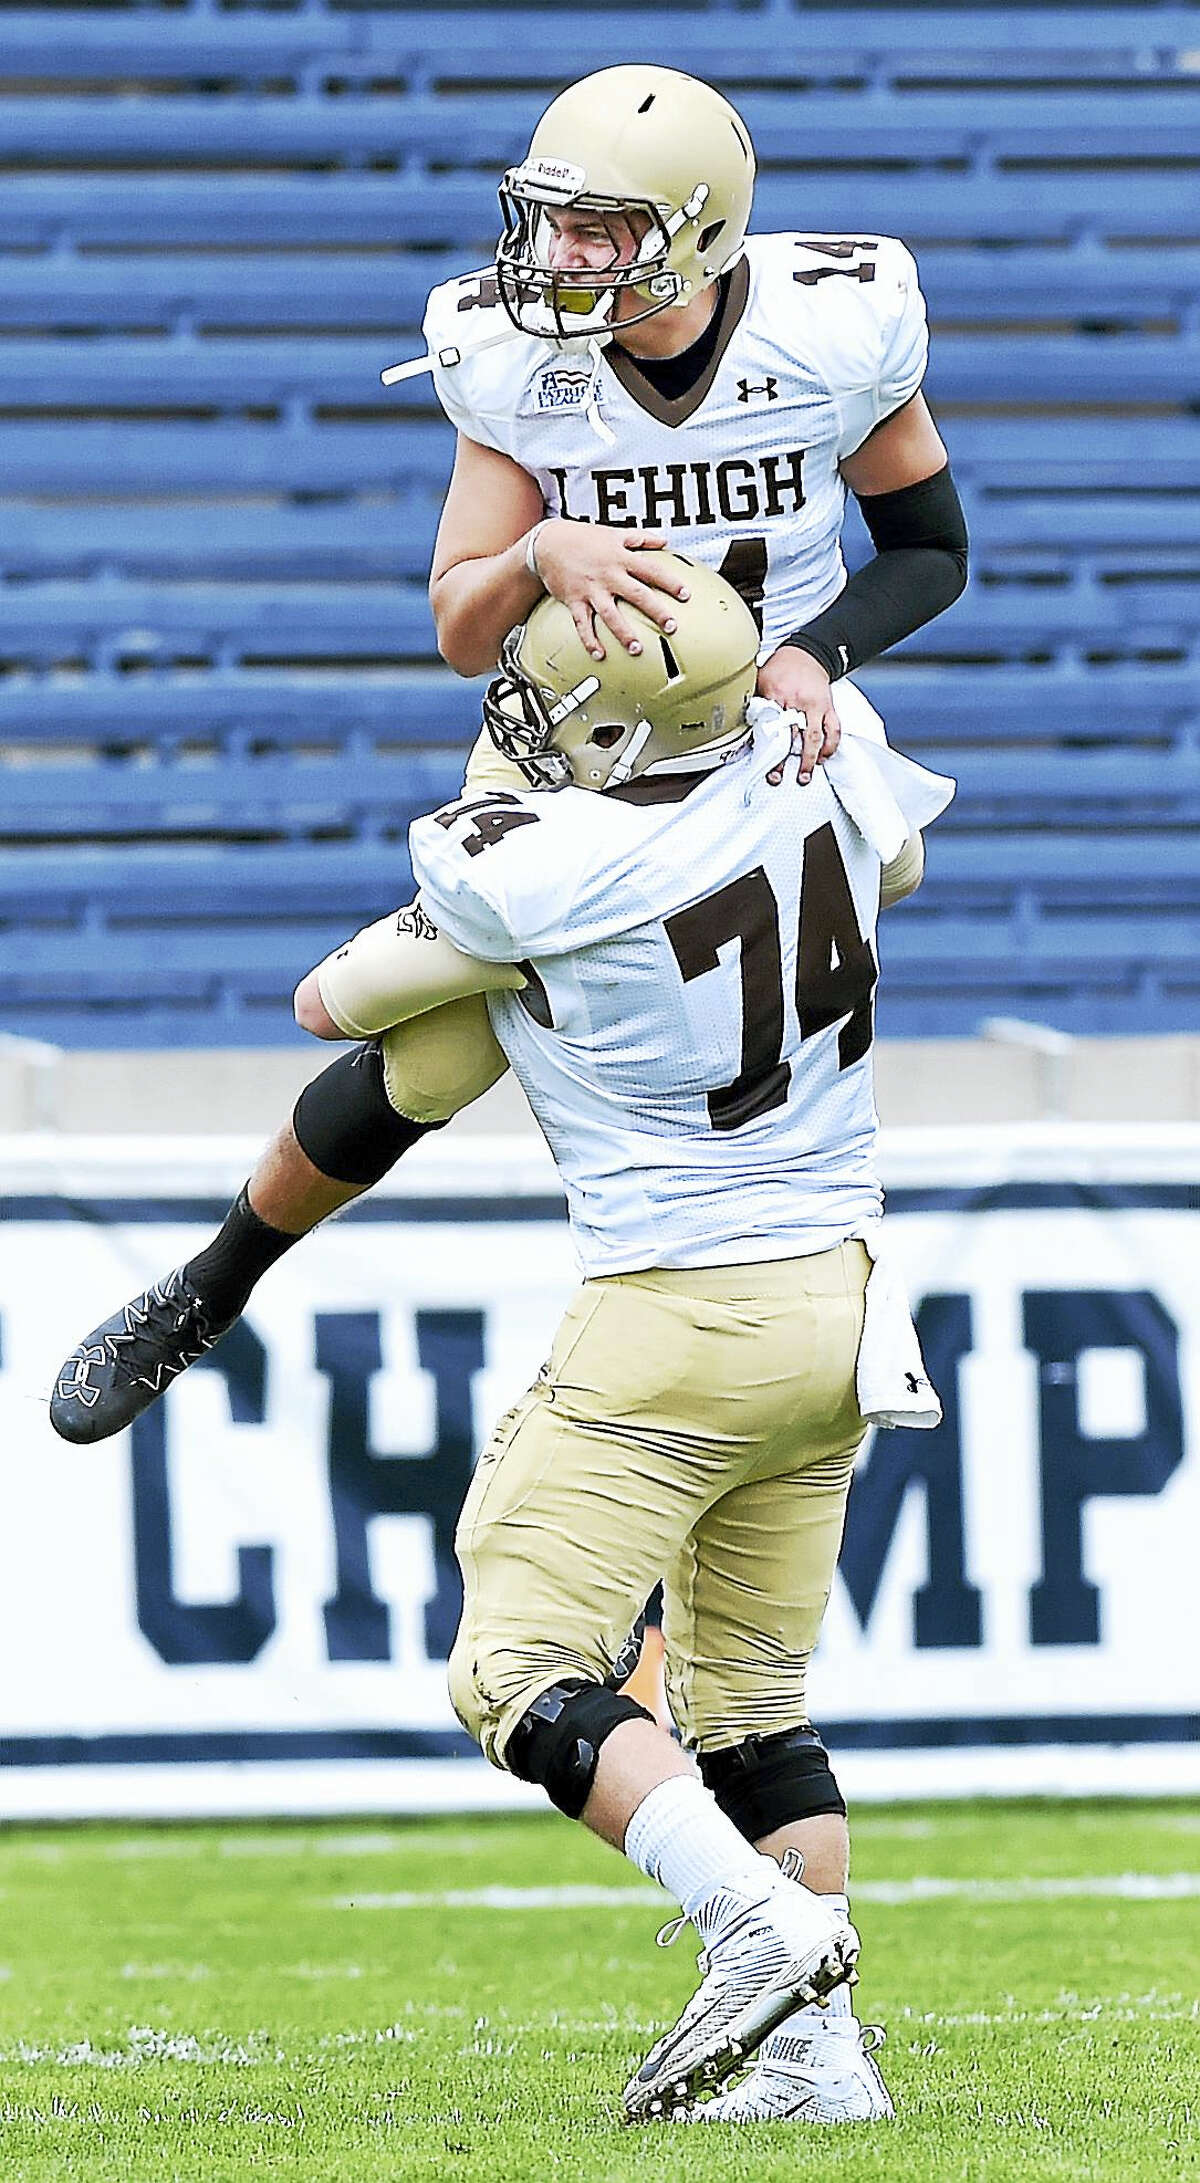 Lehigh quarterback Brad Mayes, top, celebrates with Brandon Short after Lehigh scored in the first half Saturday at Yale Bowl.